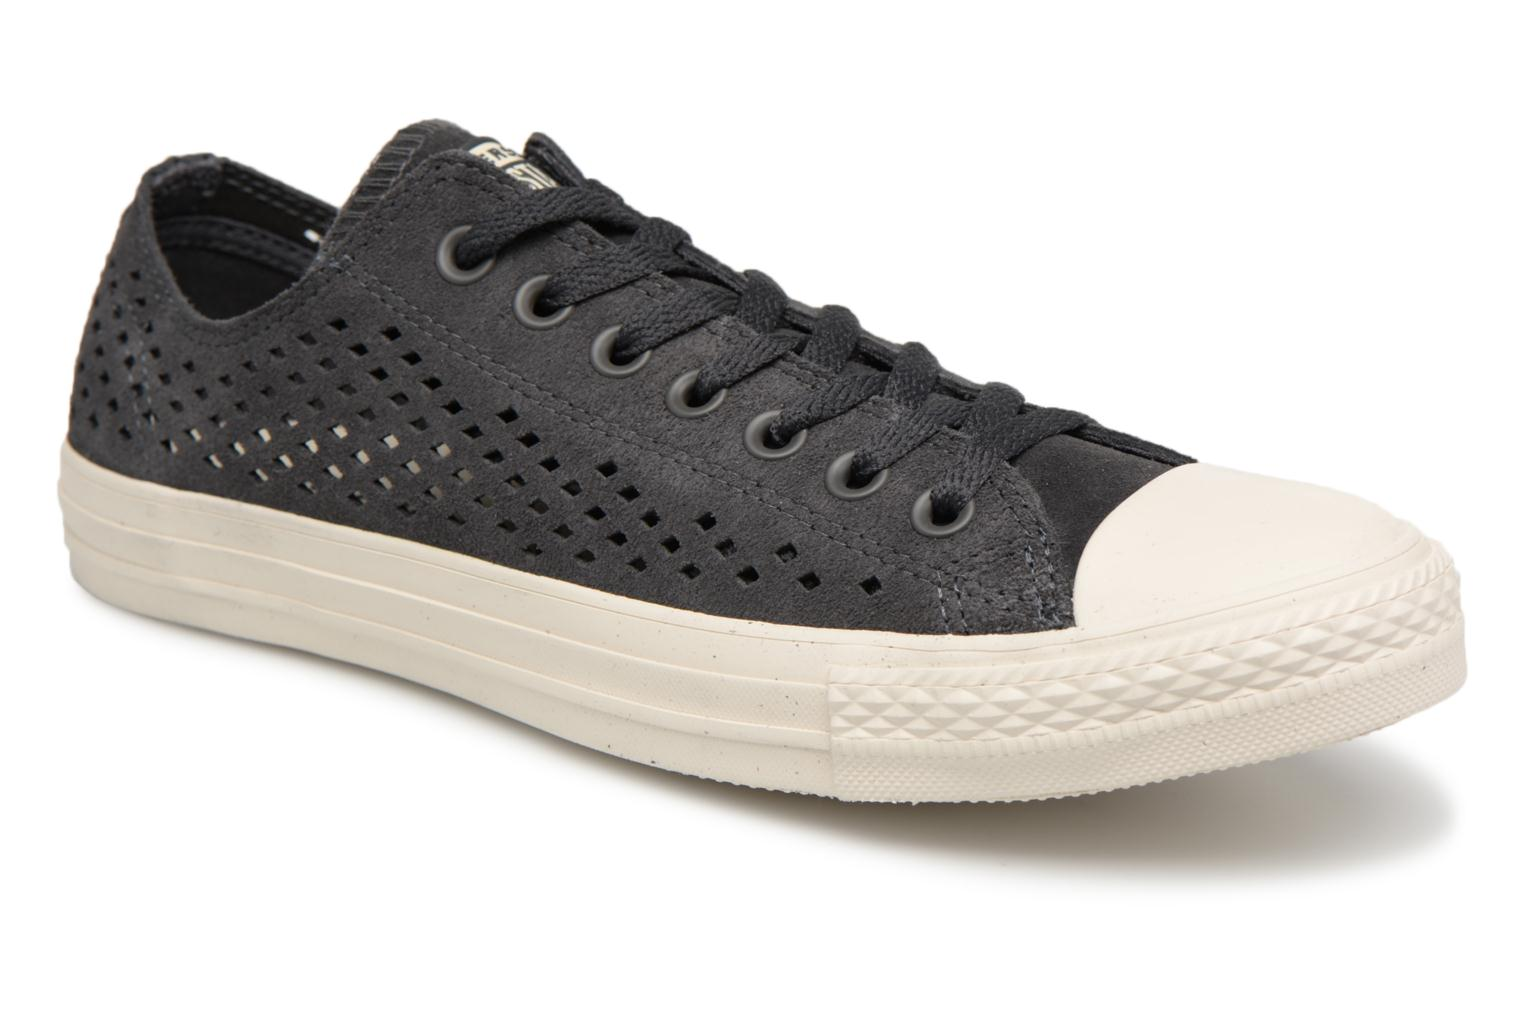 Marques Chaussure homme Converse homme Chuck Taylor All Star Nubuck Ox M Black/Black/Pale Putty